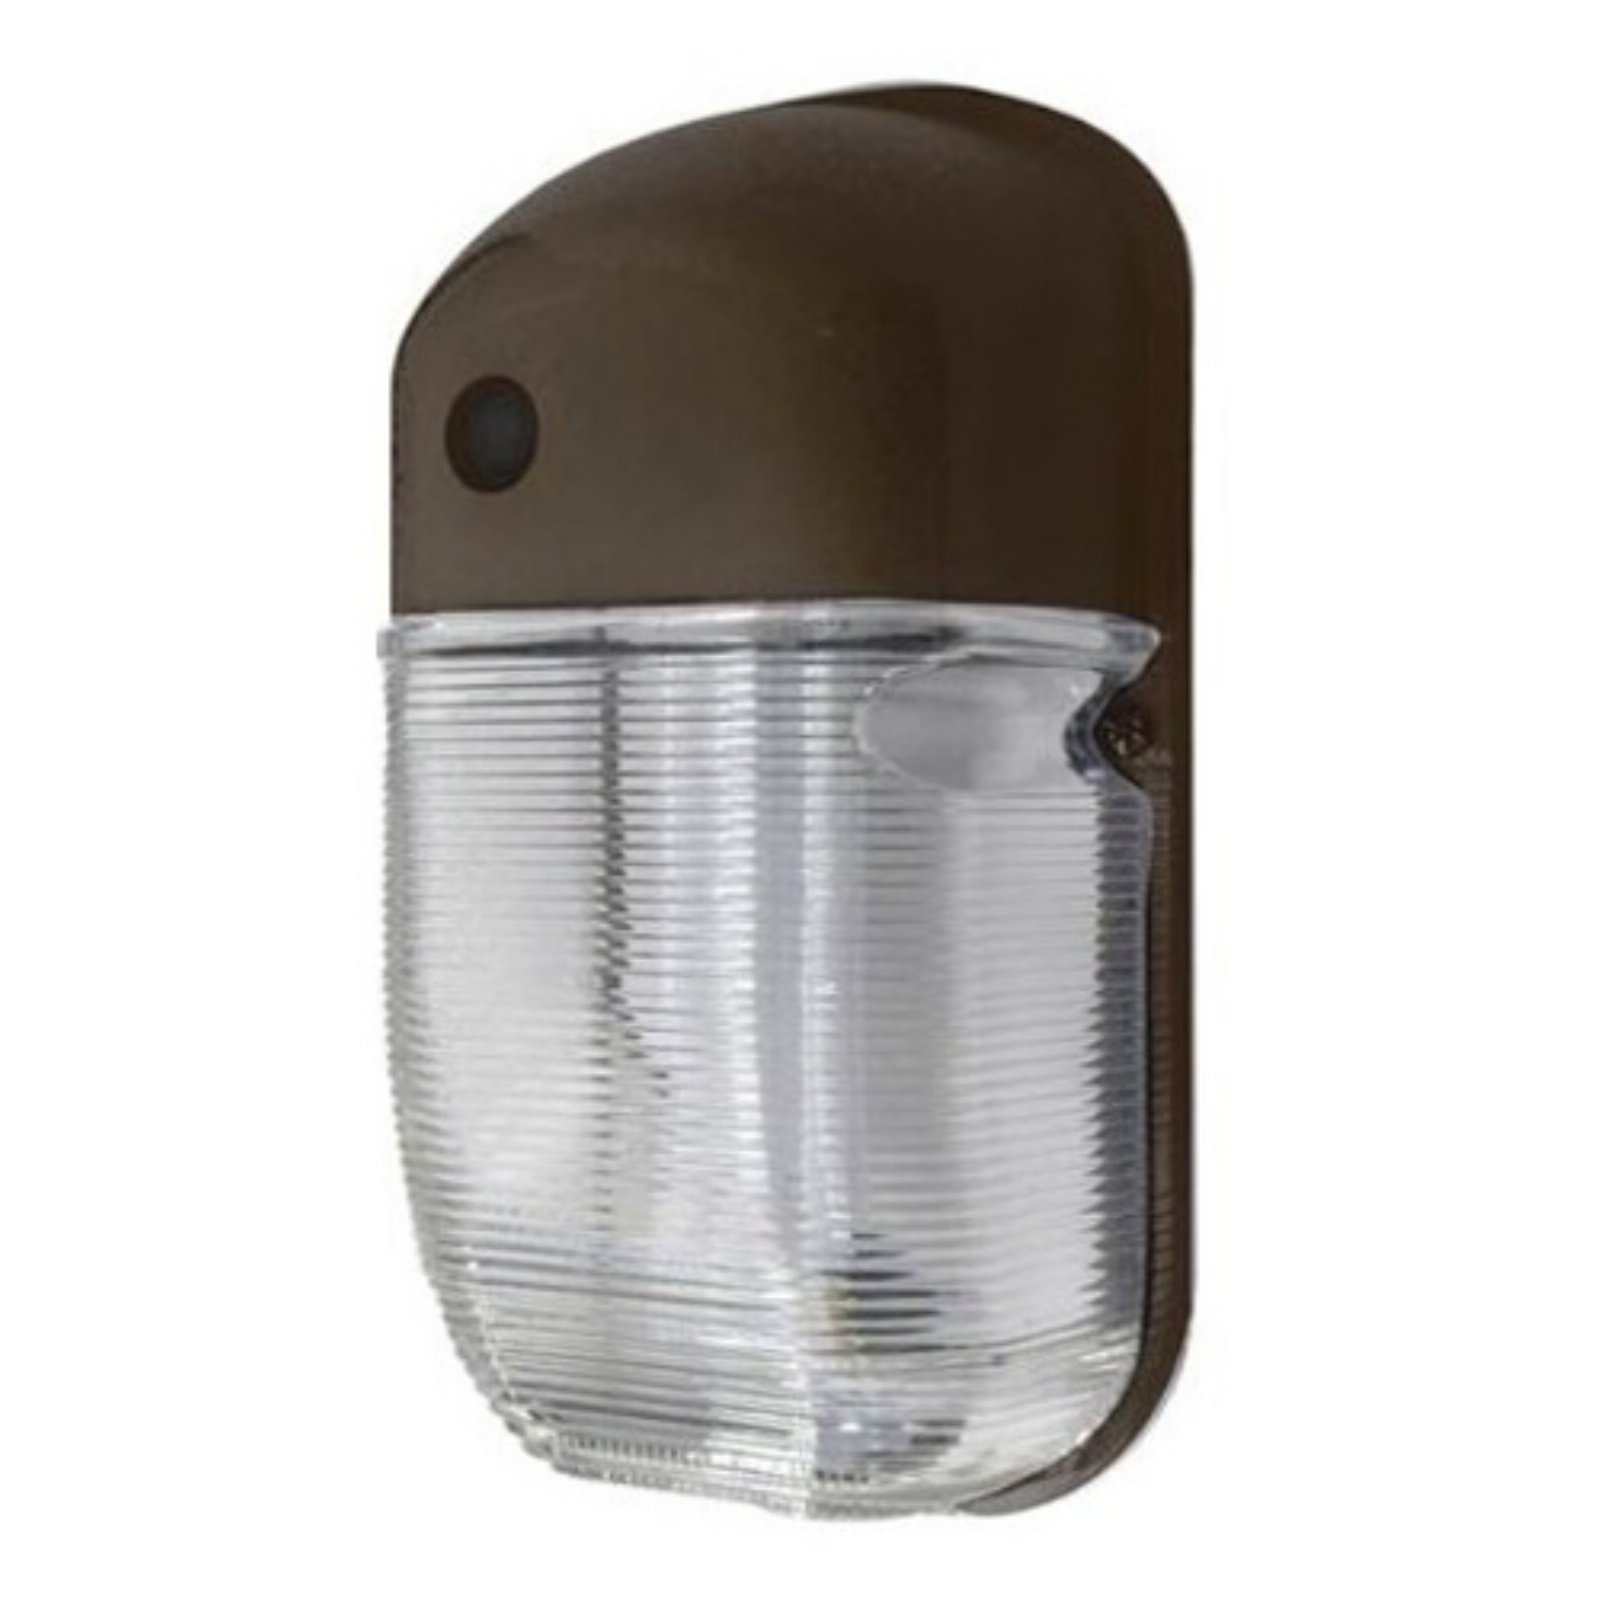 Designers Edge L-1795-42W-BR EnergyStar 42W Fluorescent Dusk to Dawn Wall Mount Light, Bronze